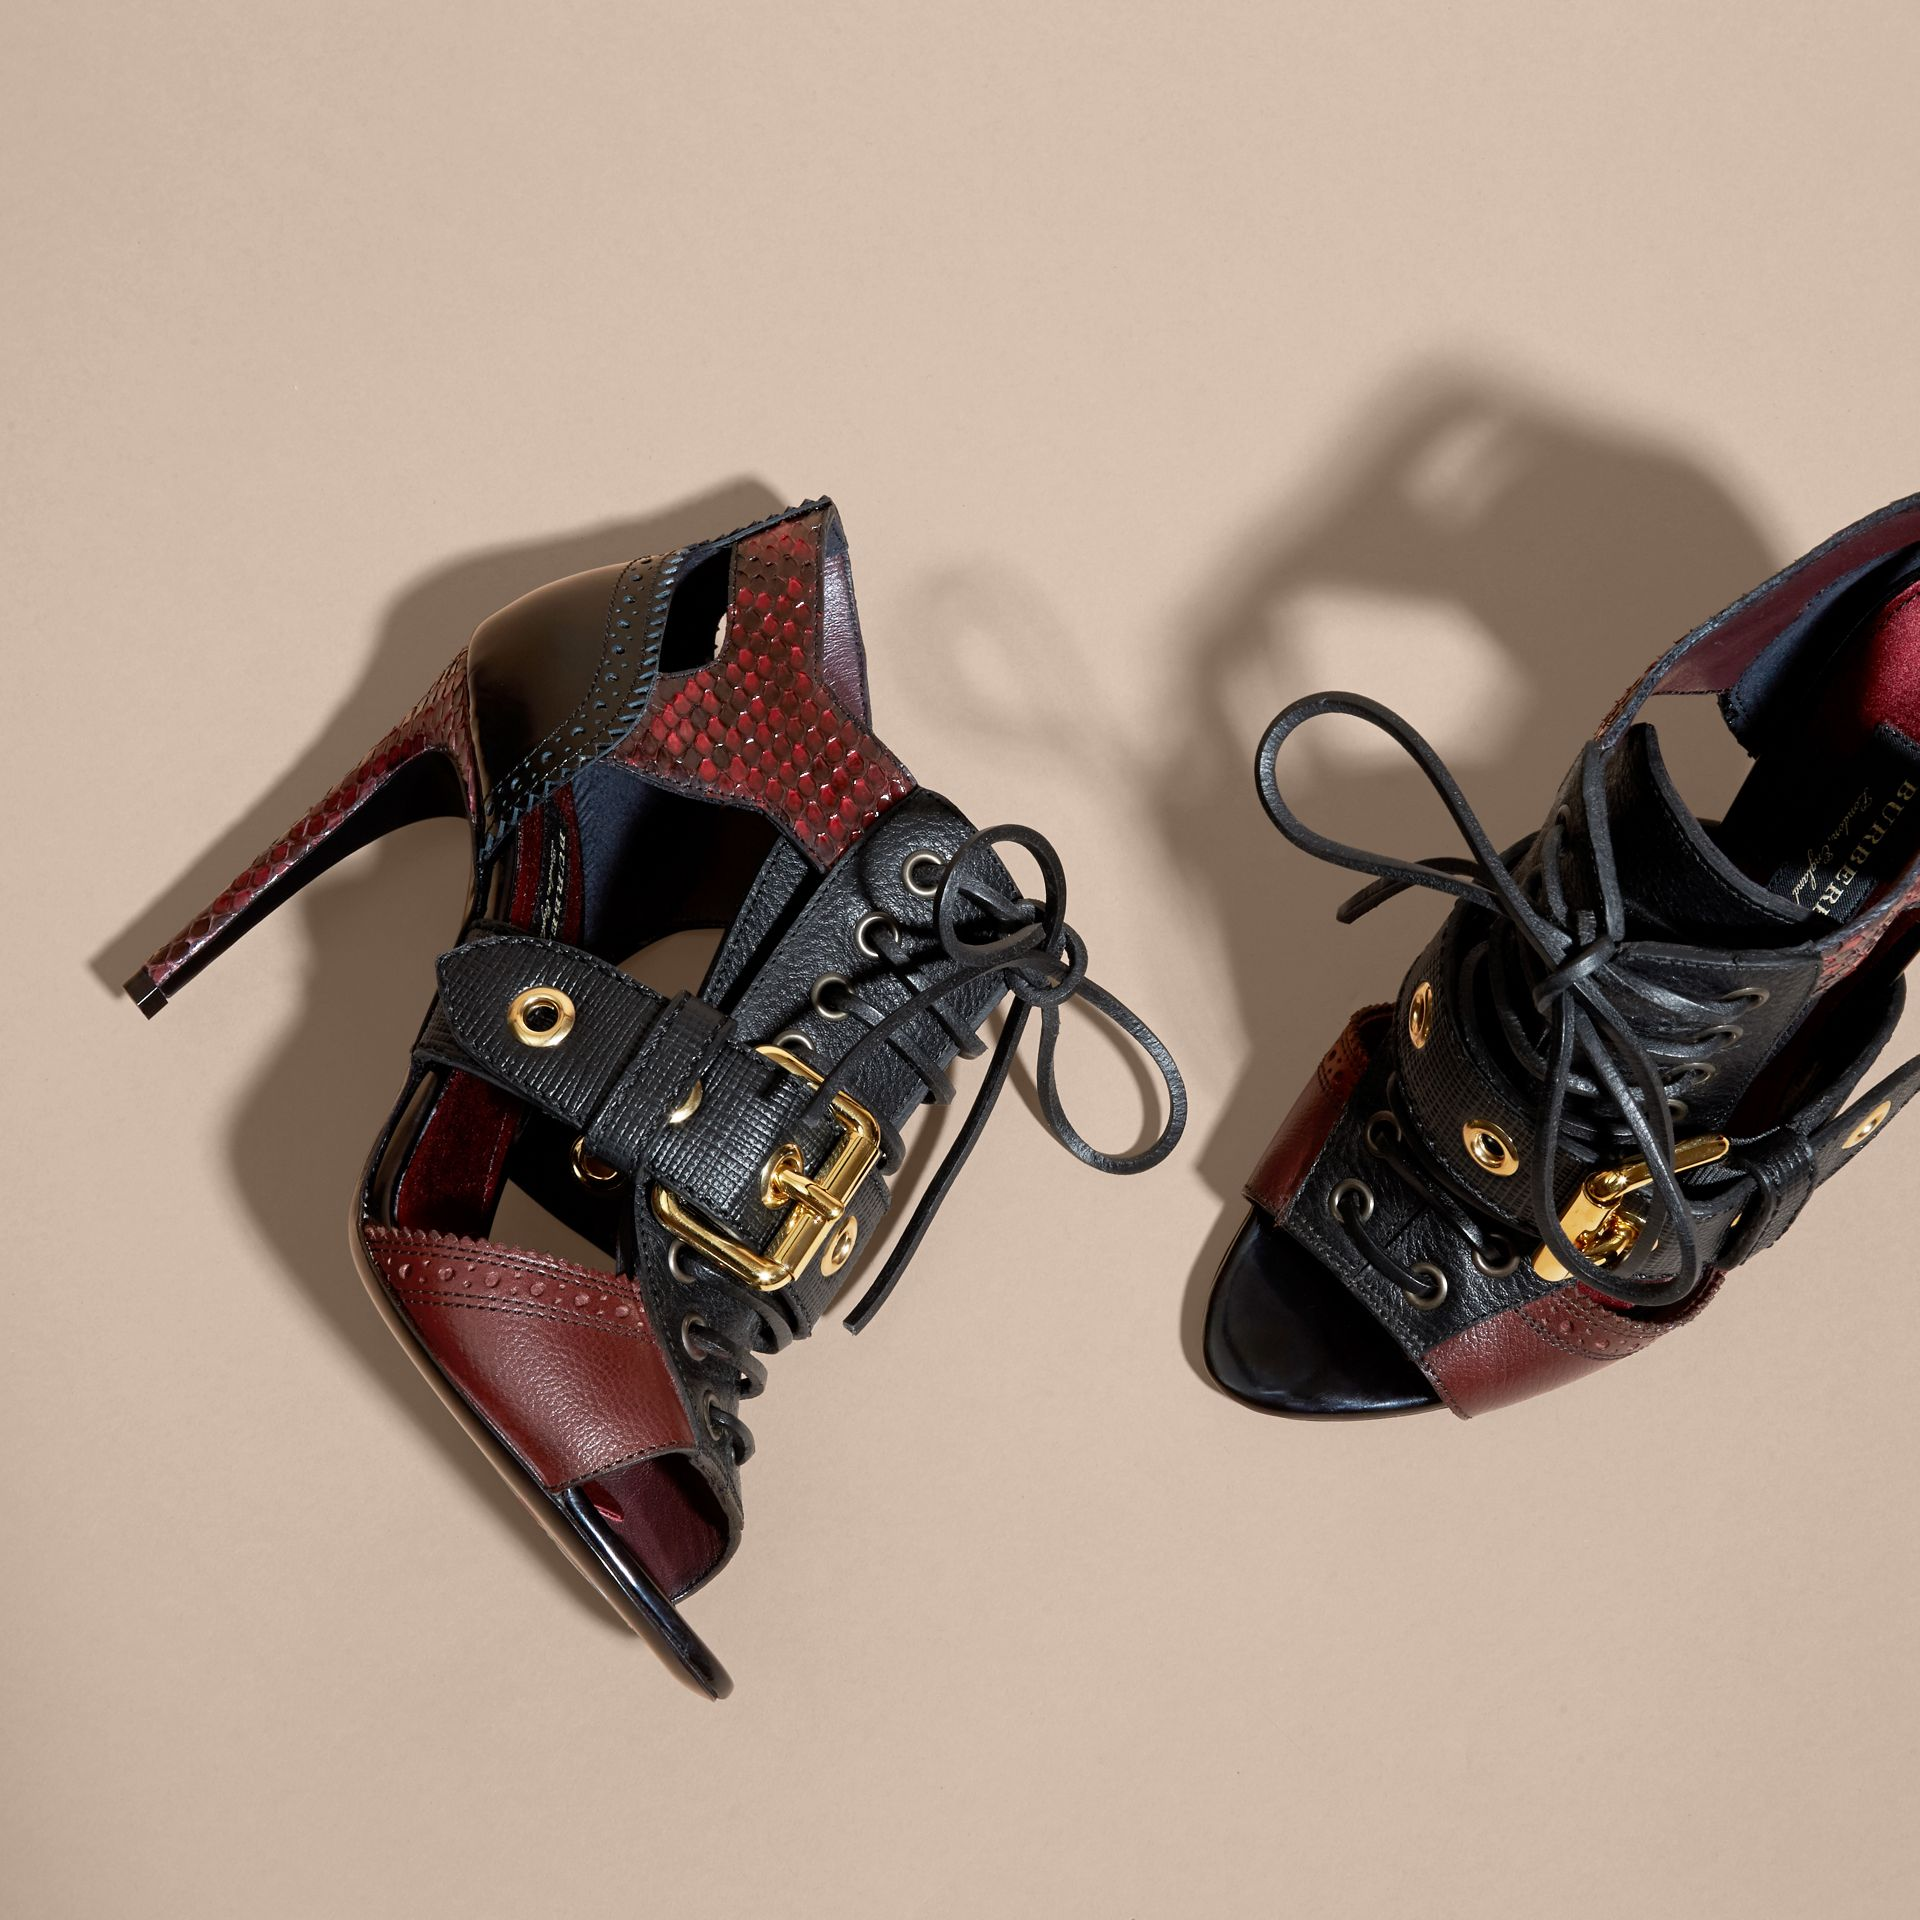 Bordeaux Buckle Detail Leather and Snakeskin Cut-out Ankle Boots Bordeaux - gallery image 3